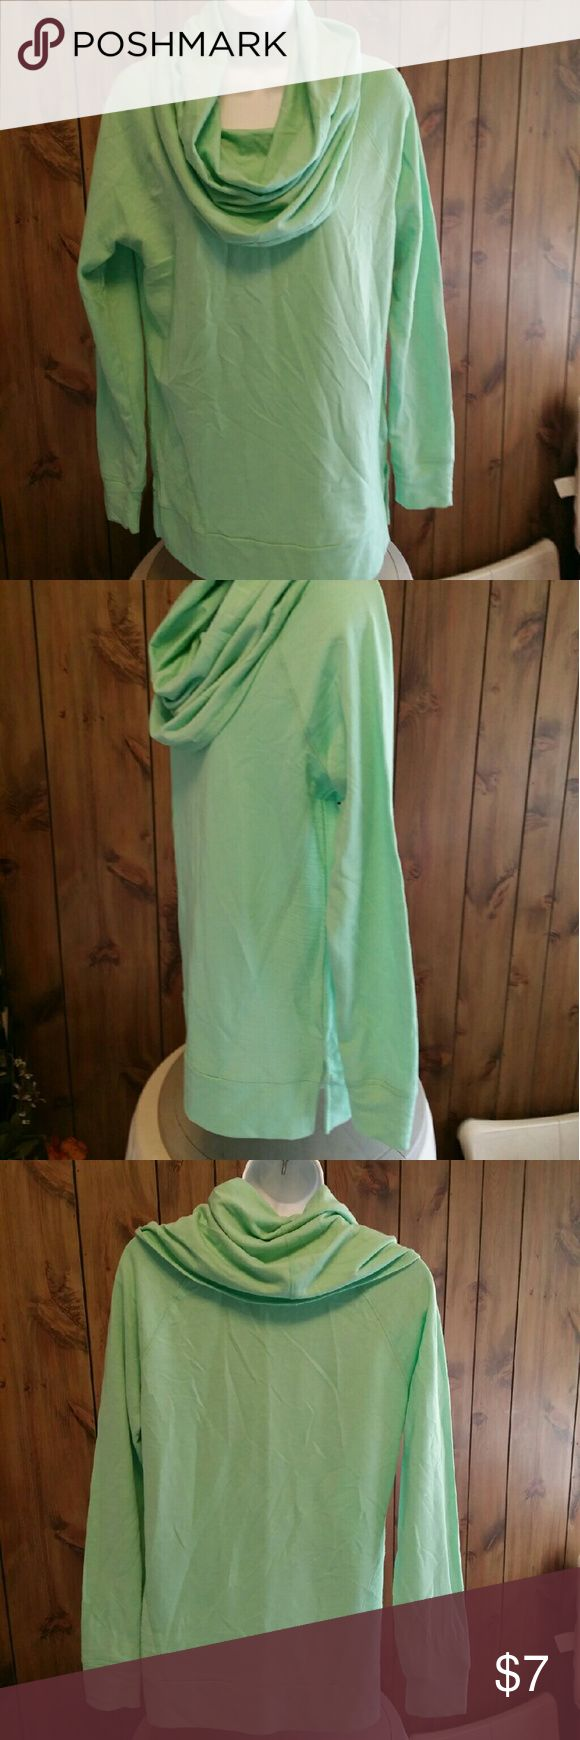 Mint green cowl top nwot Long sleeves, wide band on bottom with slits on both sides.  Very draped cowl neckline, cotton and polyester,  size med and new Red Camel Tops Tunics